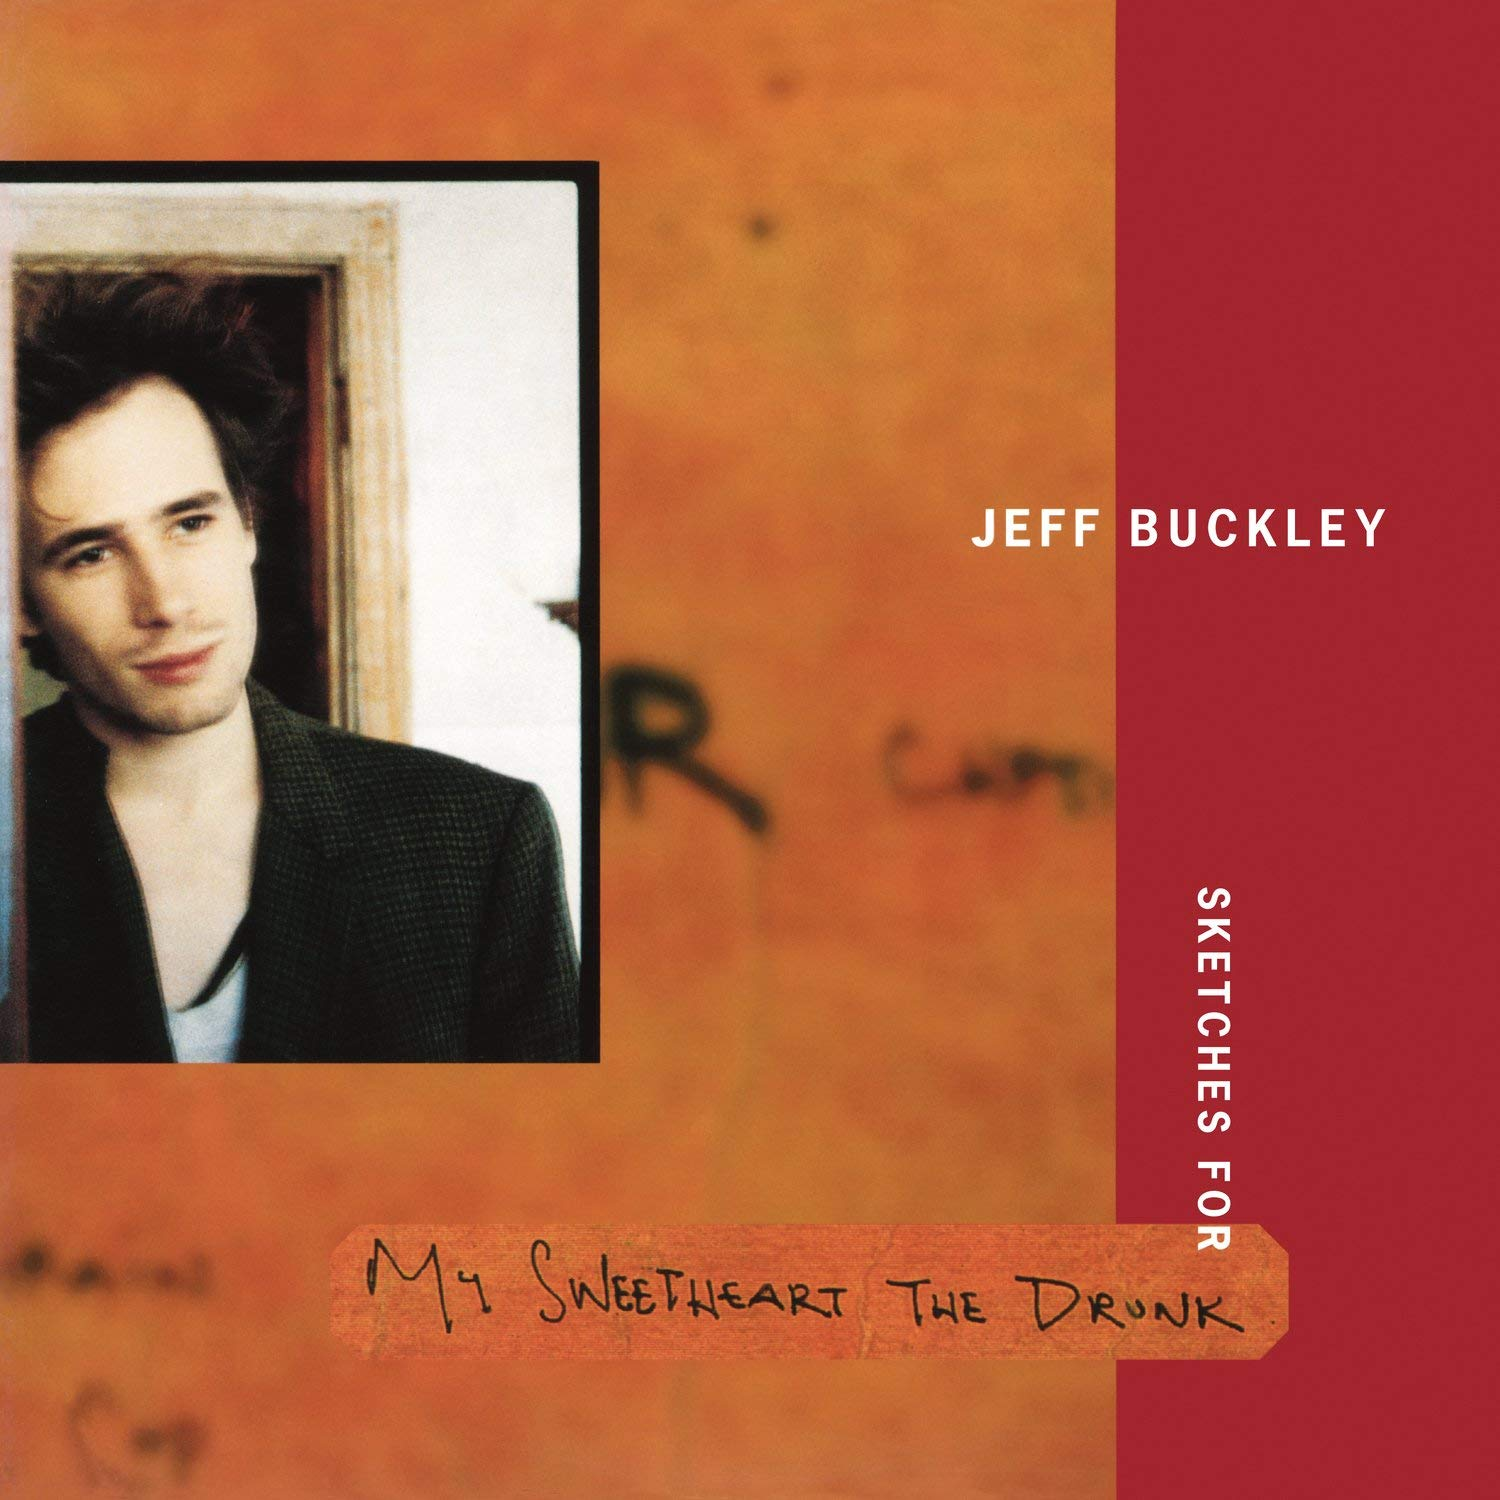 Jeff Buckley - Sketches for My Sweetheart The Drunk [LP]